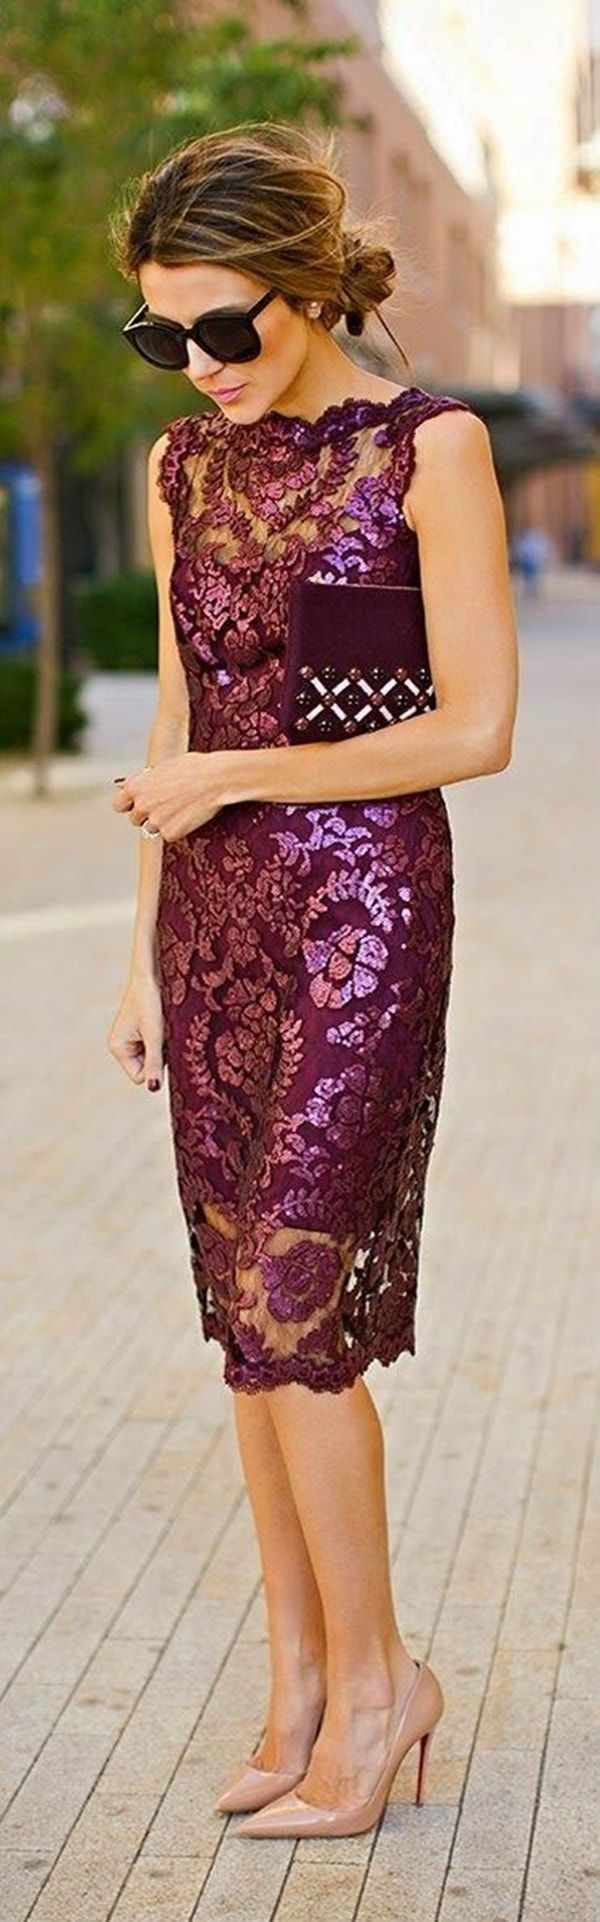 best vestidos images on pinterest cute dresses party outfits